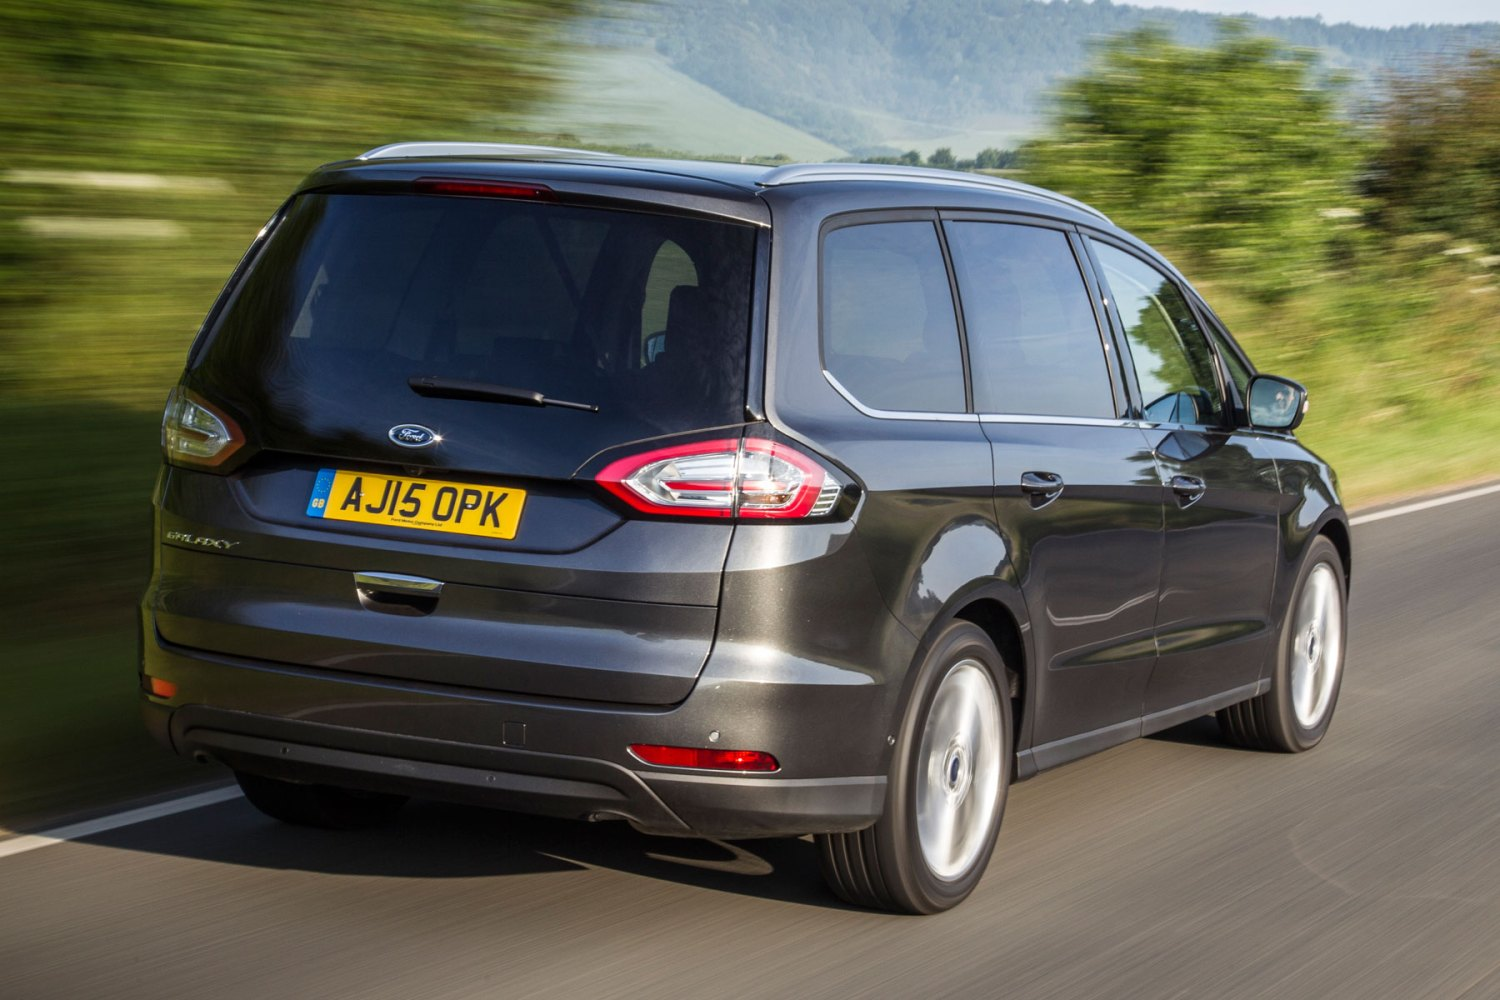 2015 Ford Galaxy: on the road